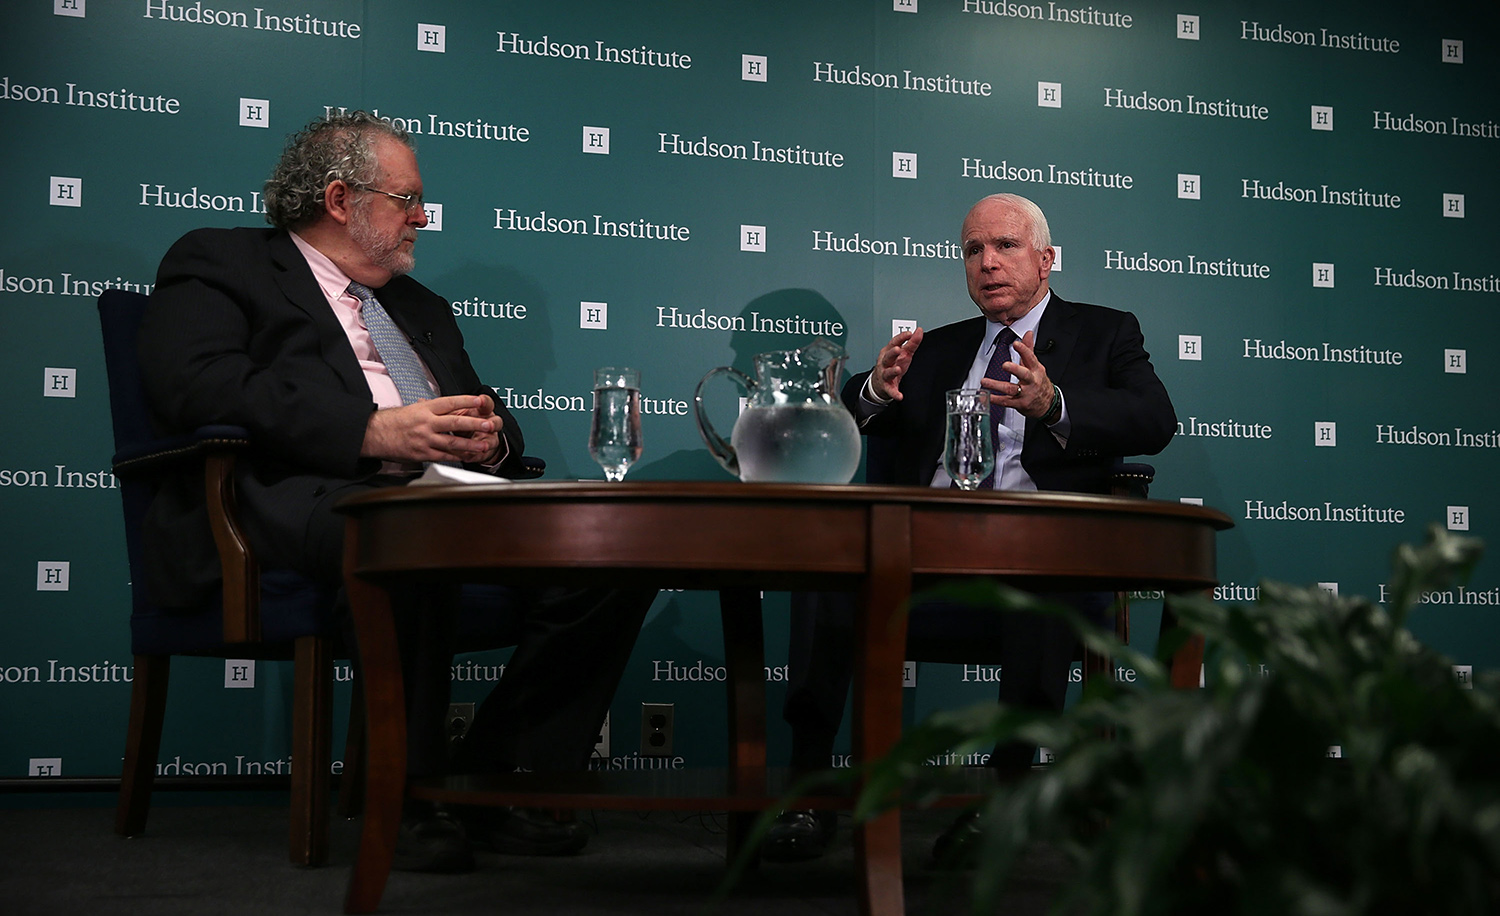 John McCain in discussion with Walter Russell Mead at the Hudson Institute on July 21, 2015. Alex Wong/Getty Images.